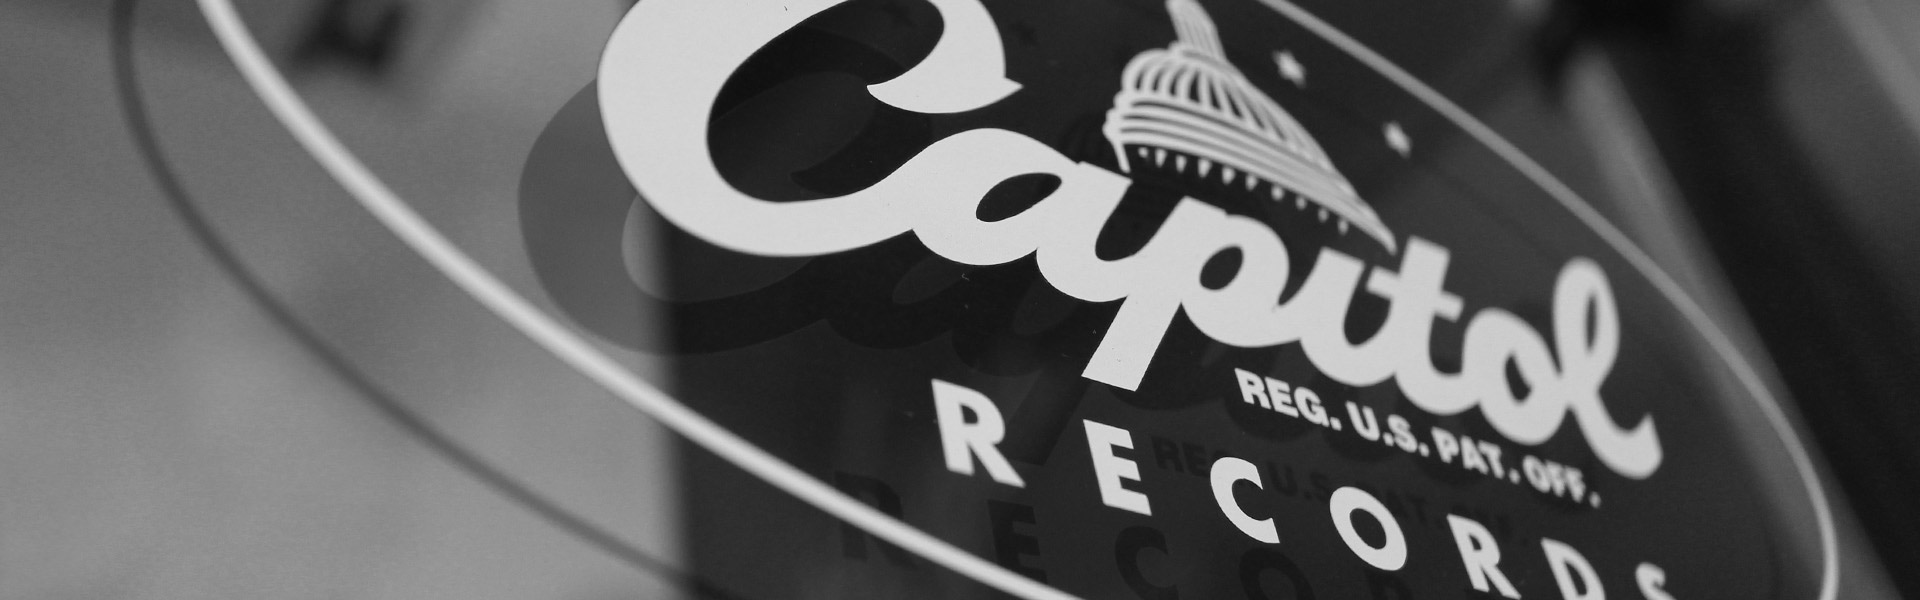 Capitol Records UK - UMG